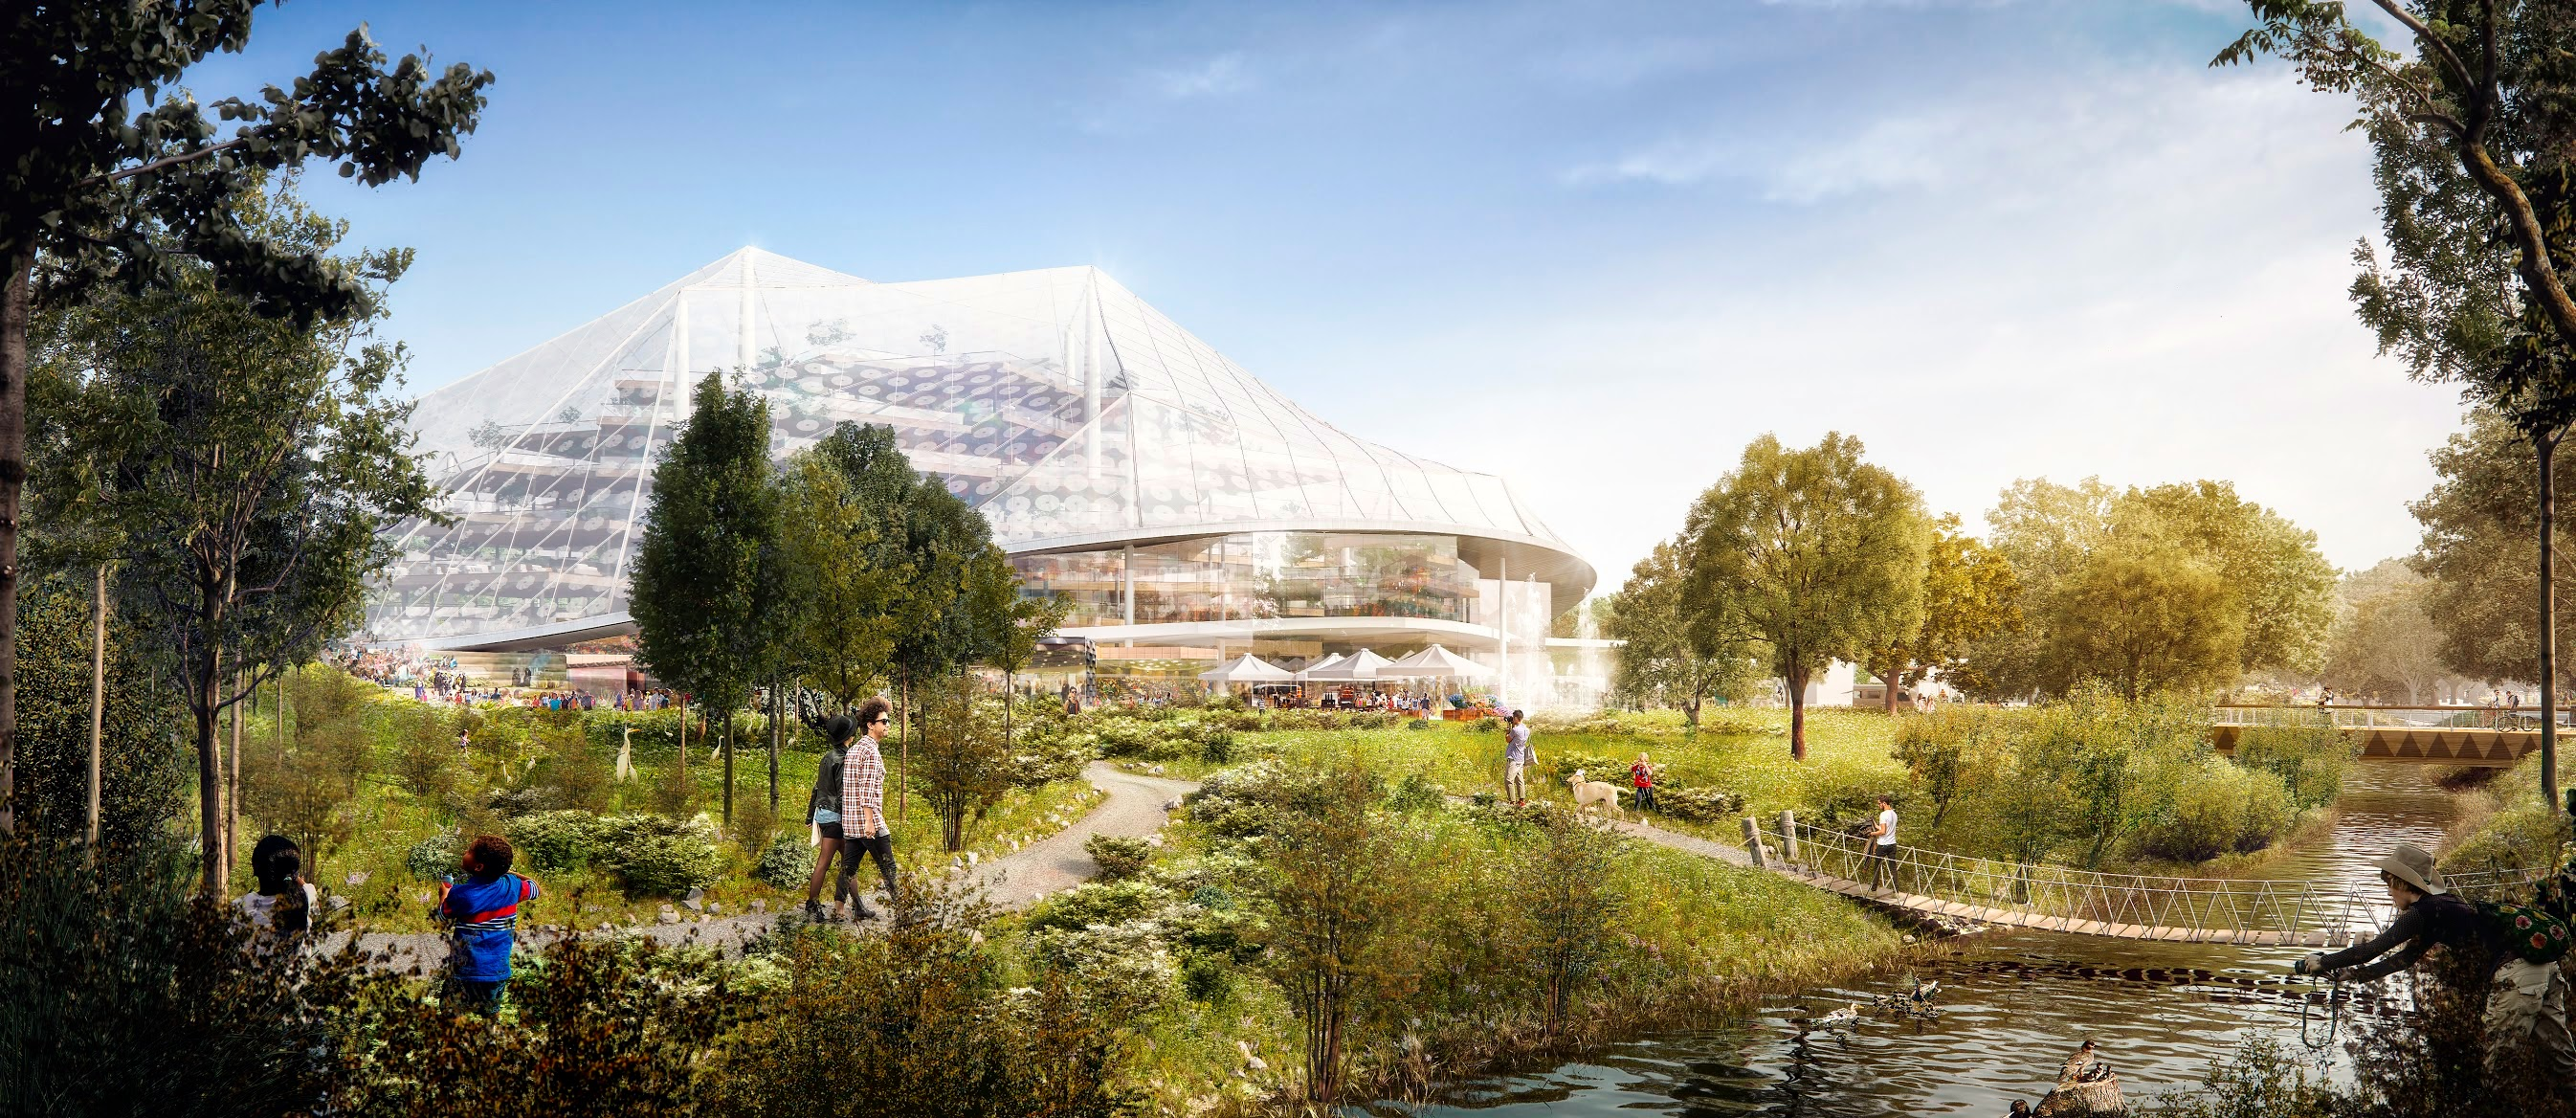 Check Out Renderings Of Google 39 S Proposed New Campus